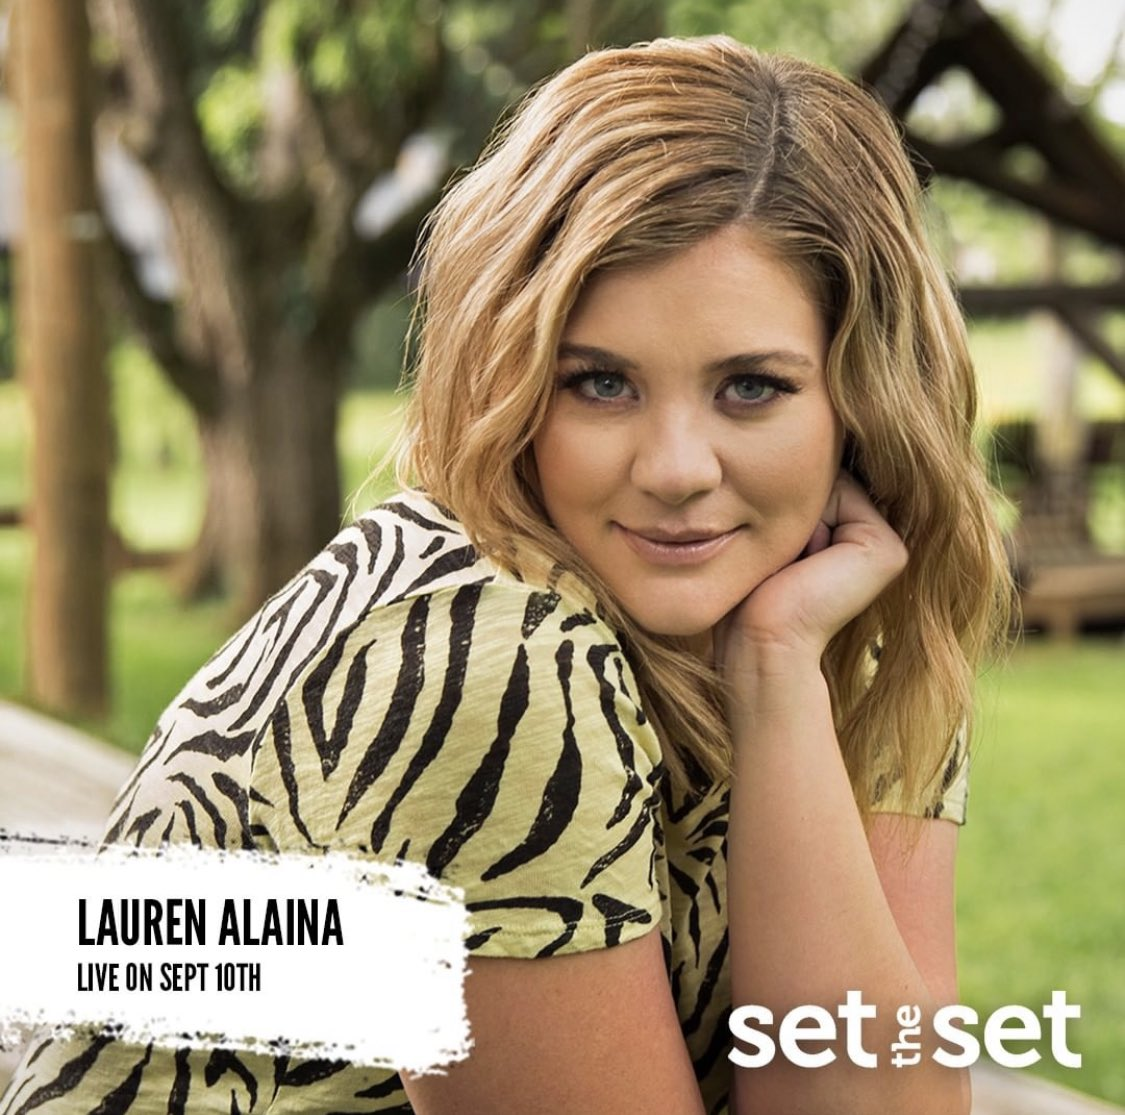 🚨 NEW ARTIST ALERT. @Lauren_Alaina is now live on #SetTheSet. Pick the songs you'd want her to perform on Sept 10 by visiting https://t.co/YO3SlyVBu8. She's also going live on @USCellular's IG at 7pm CST TONIGHT! #Music https://t.co/eubv95eUoz